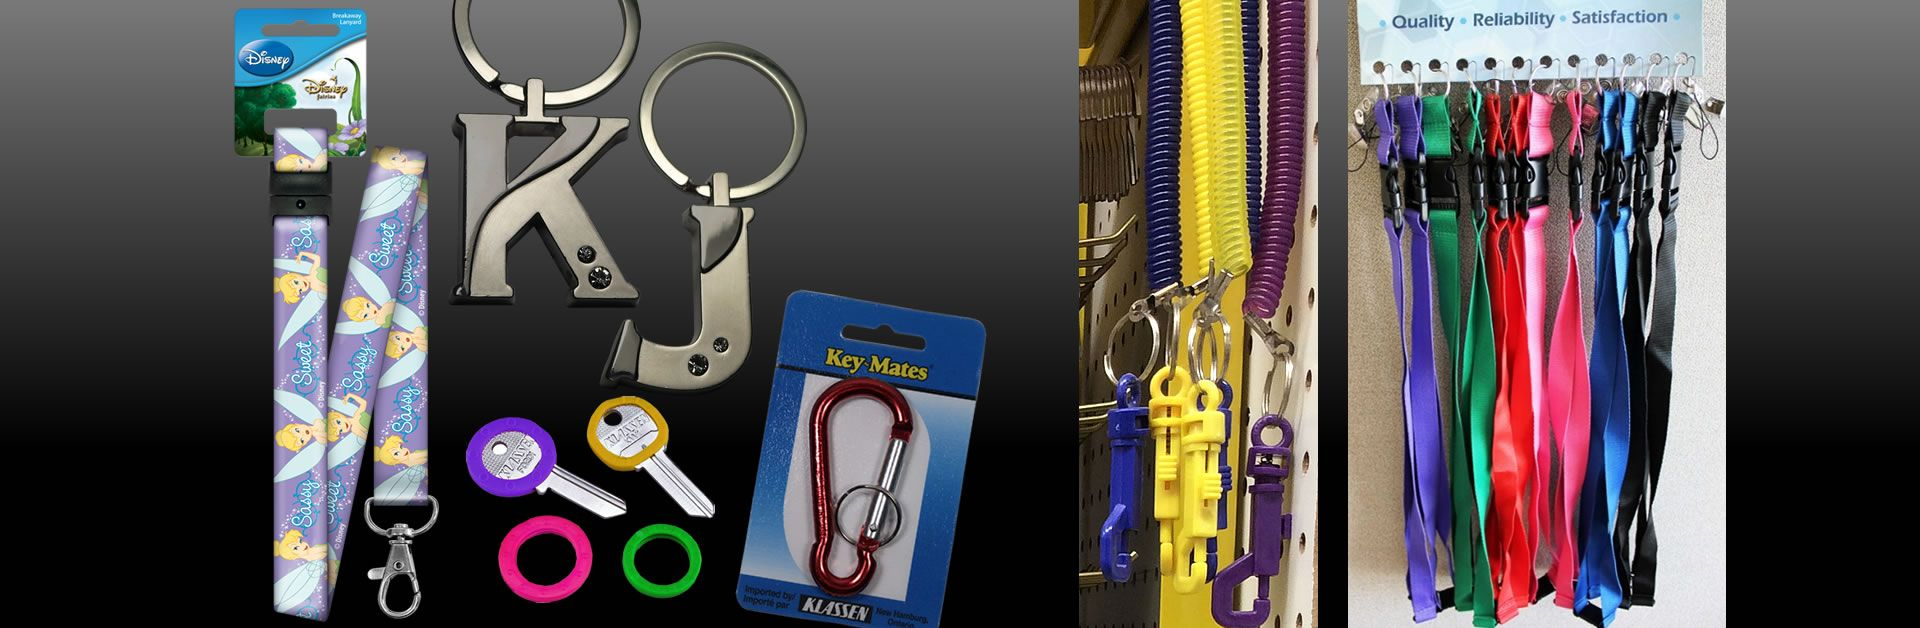 Key Chains and accessories